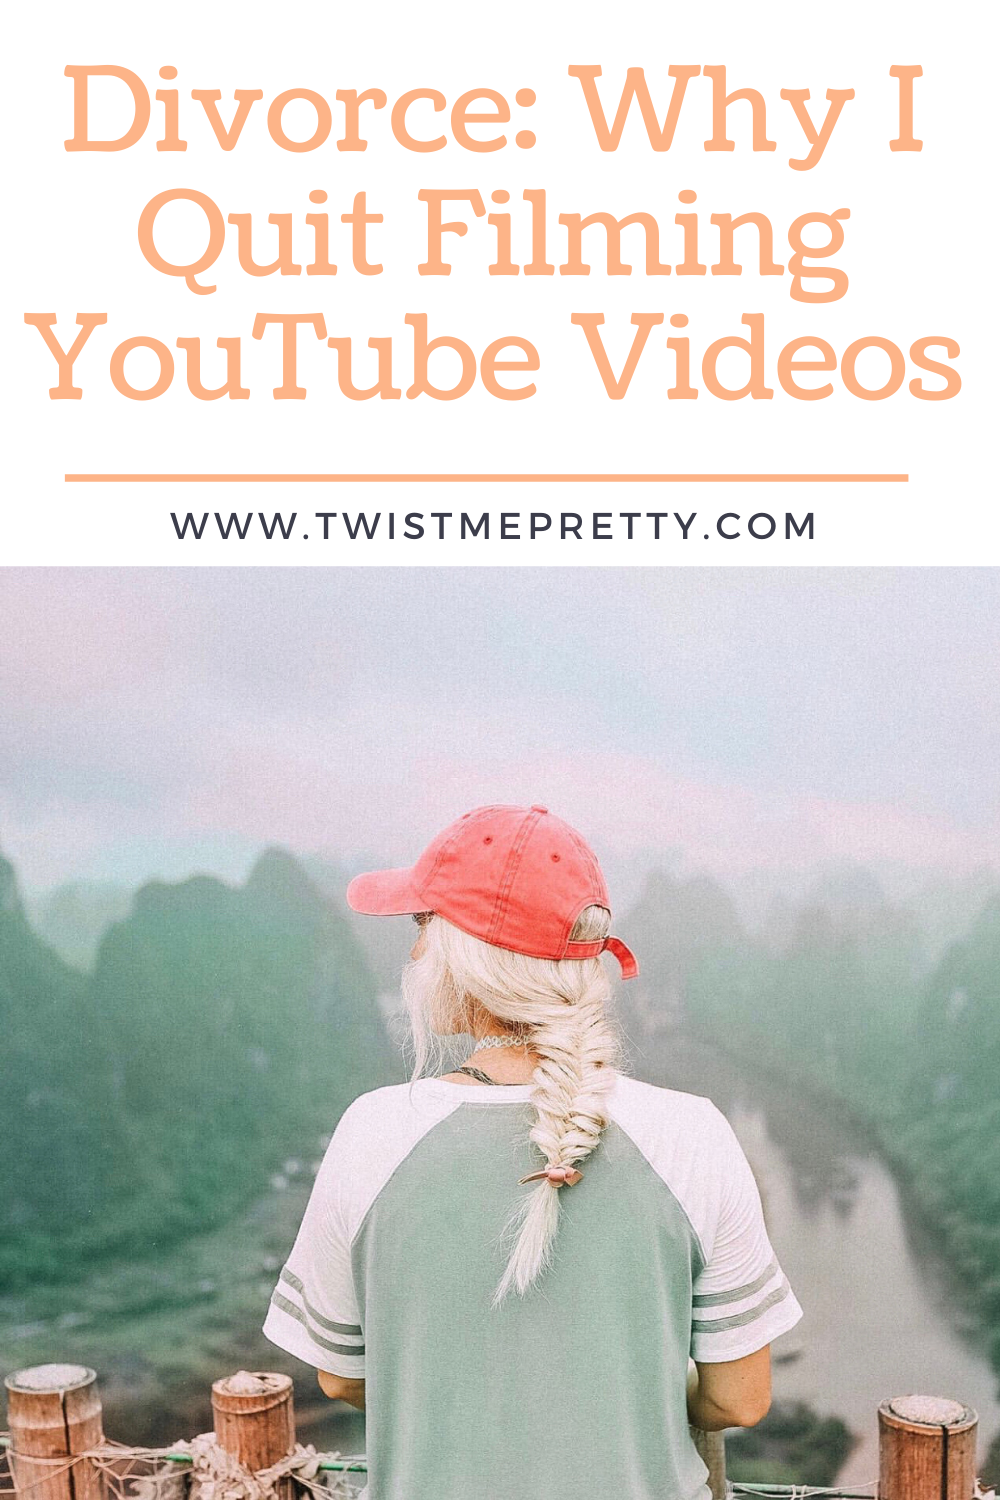 Divorce: Why I quit filming YouTube videos. www.TwistMePretty.com